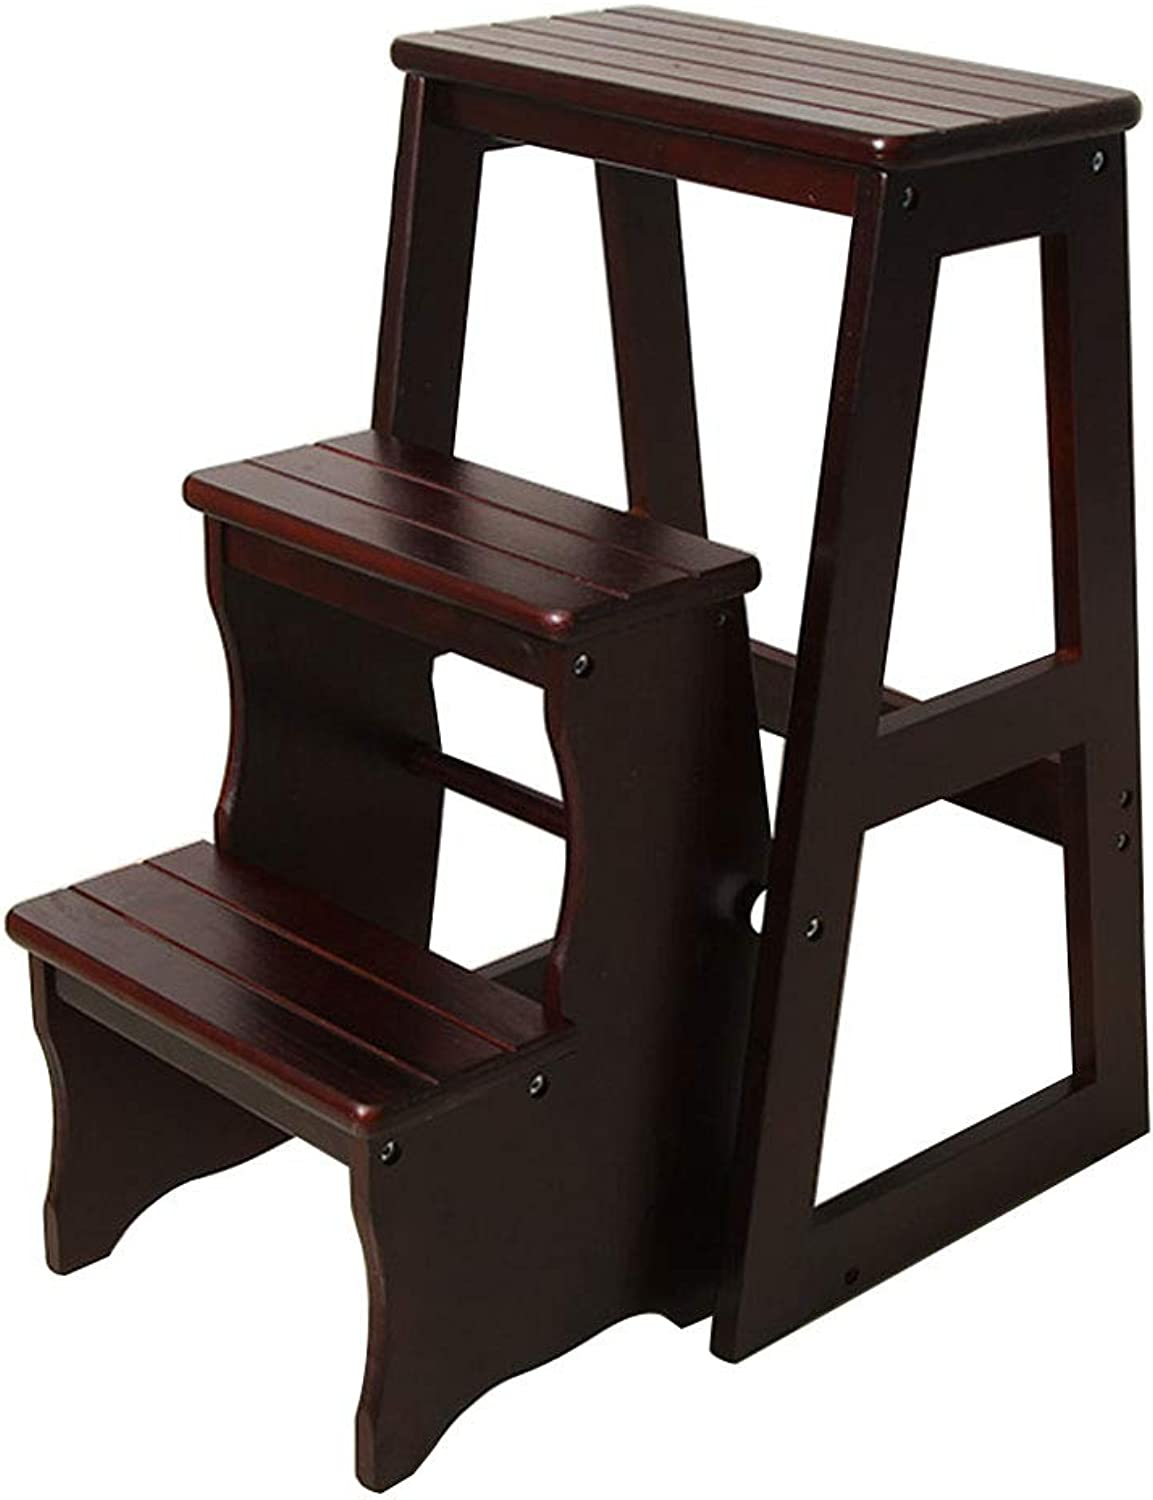 Step Stool Solid Wood Folding Chair 3 Step Stair Chair Portable Household Ladder Light Garden Tools Max Load 150KG (color Black Walnut)